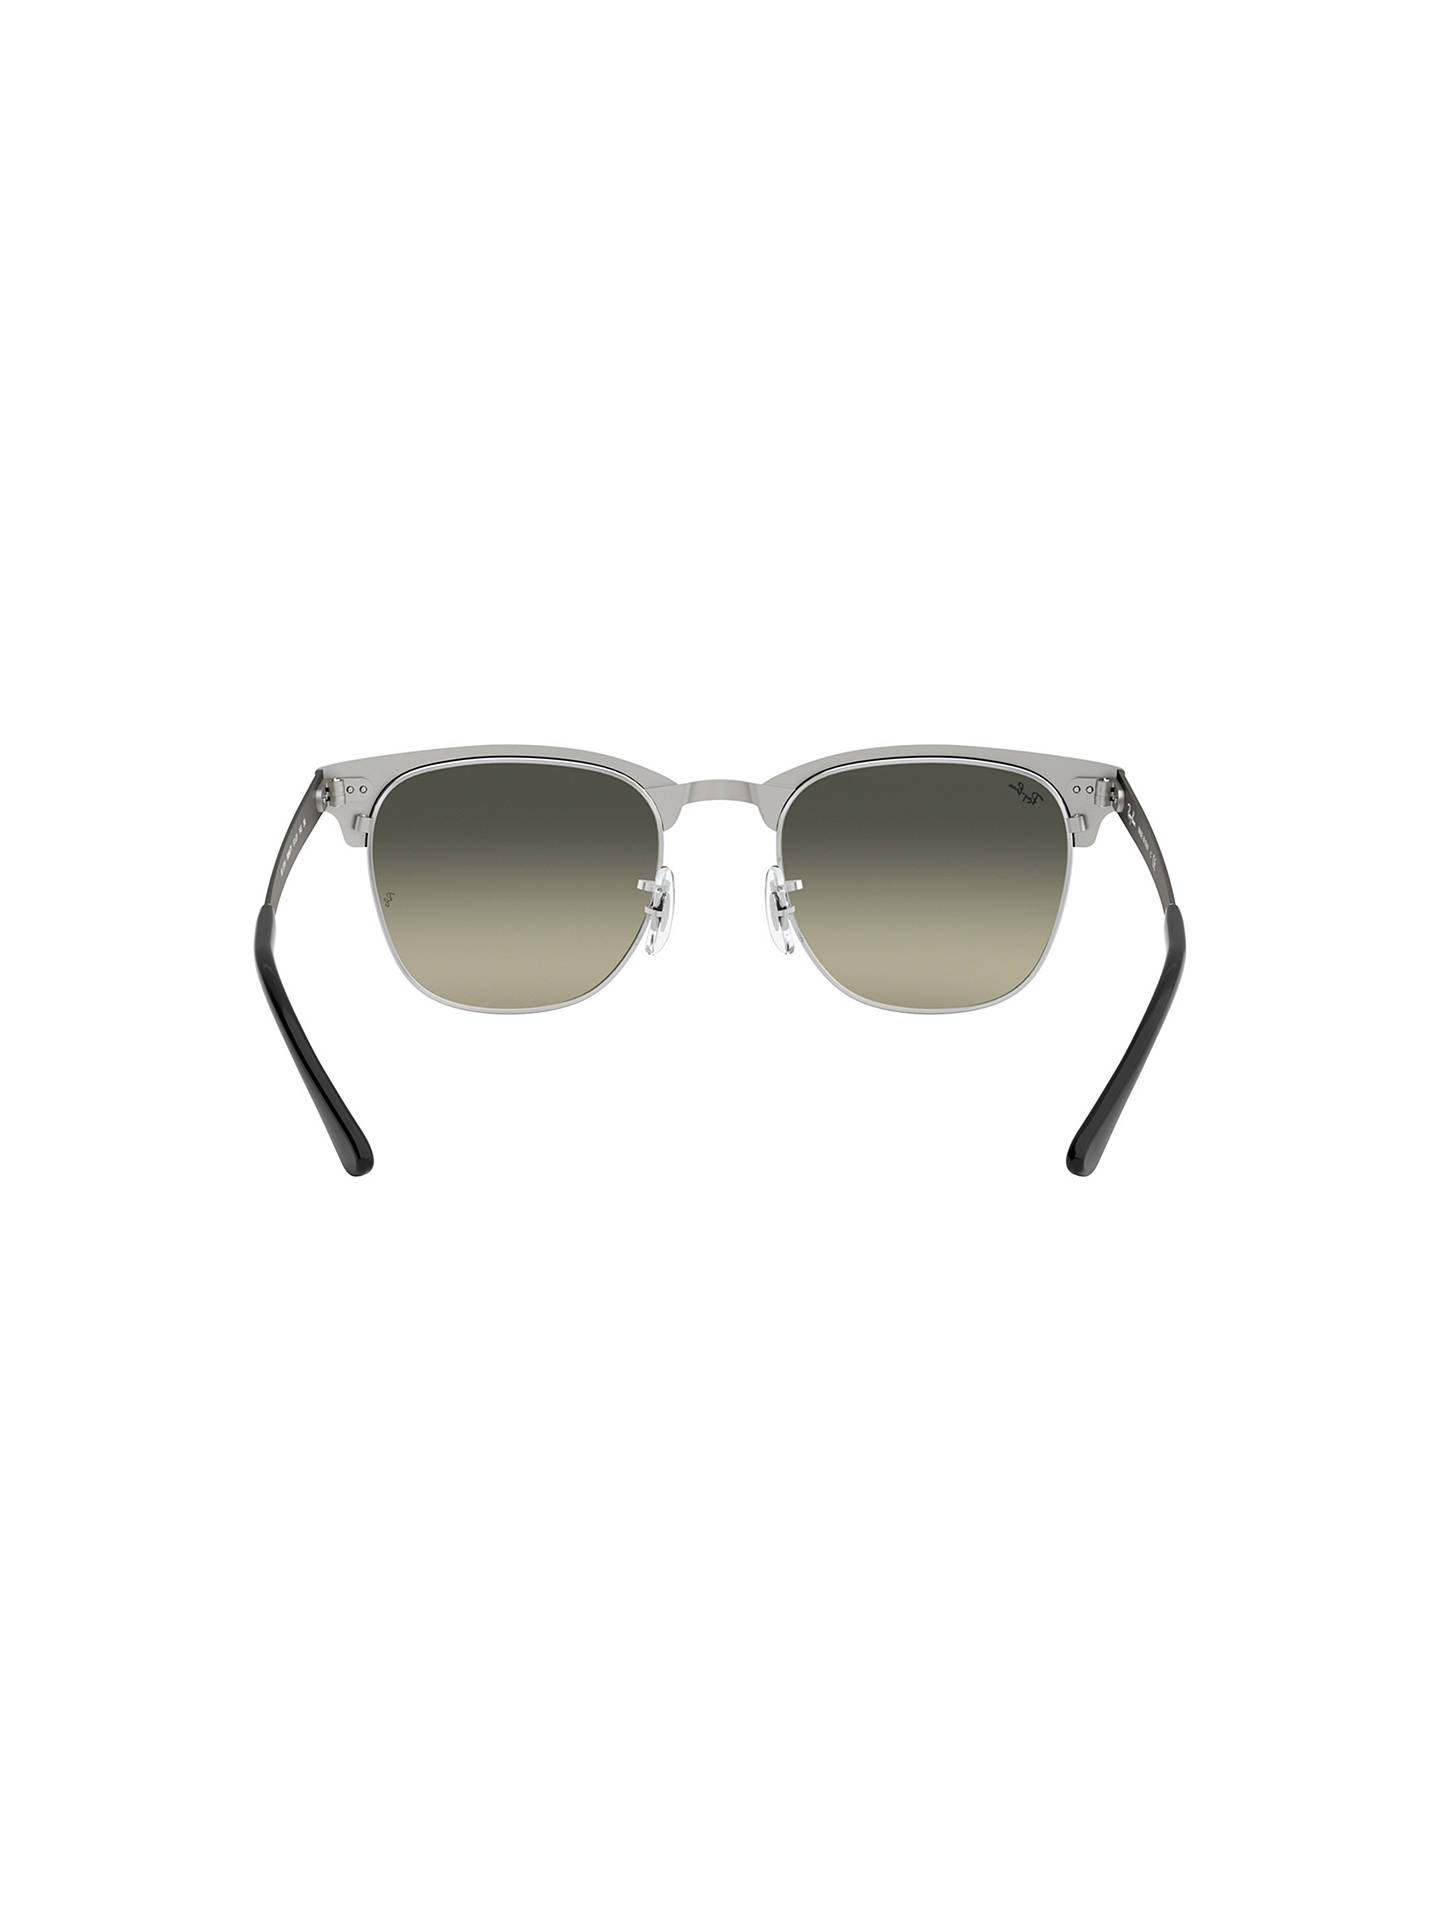 c37094a5f1 Ray-Ban RB3716 Unisex Square Sunglasses at John Lewis   Partners